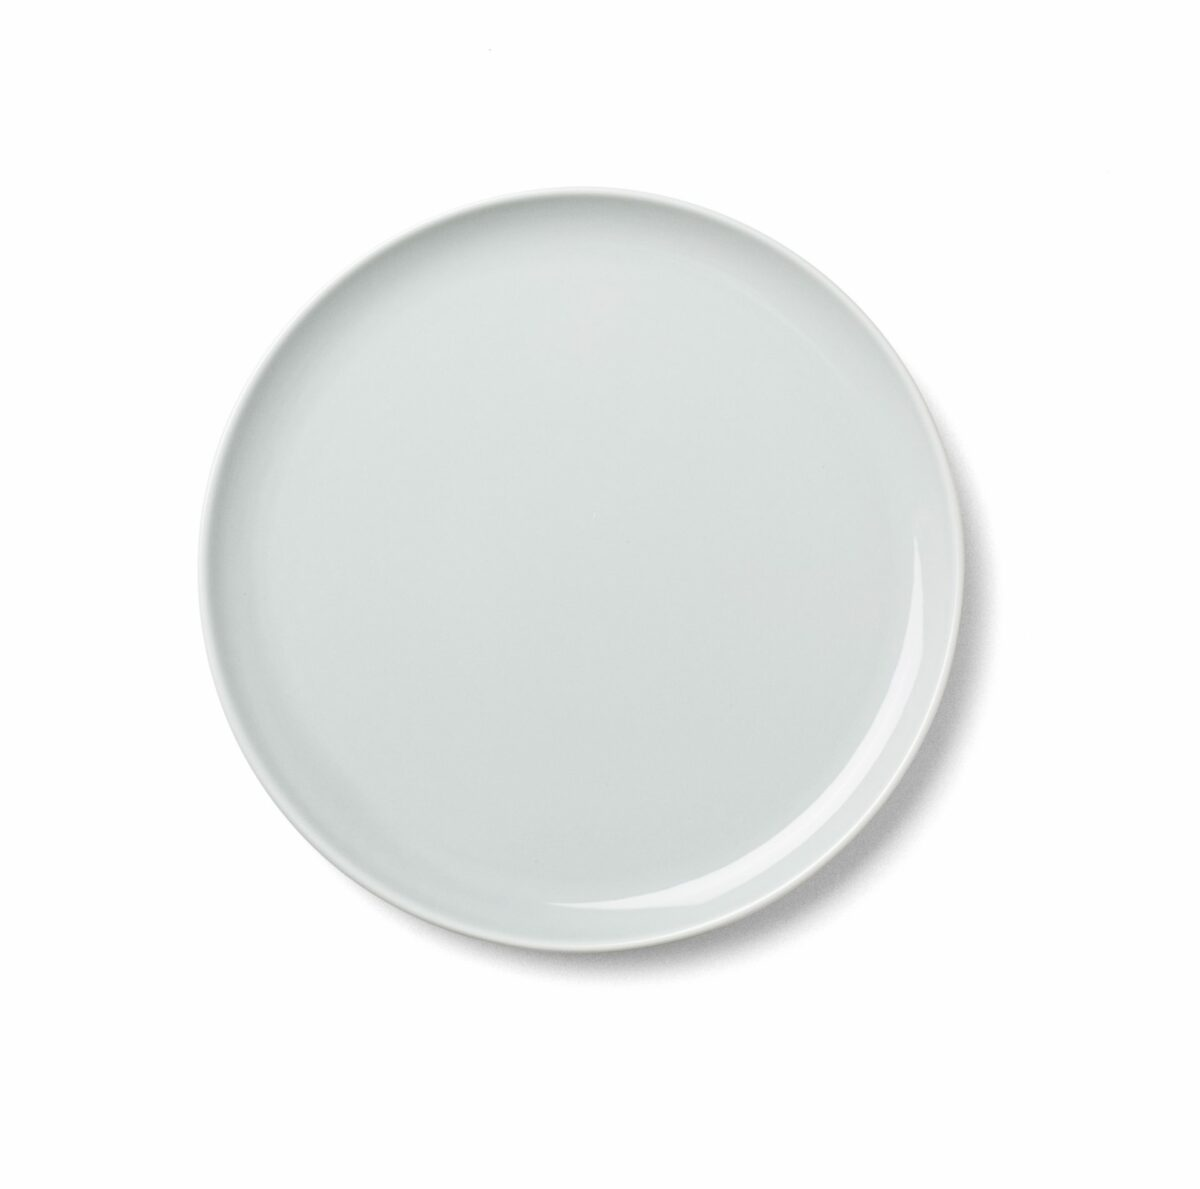 2020630 New Norm Side Plate O19 cm White Norm 01